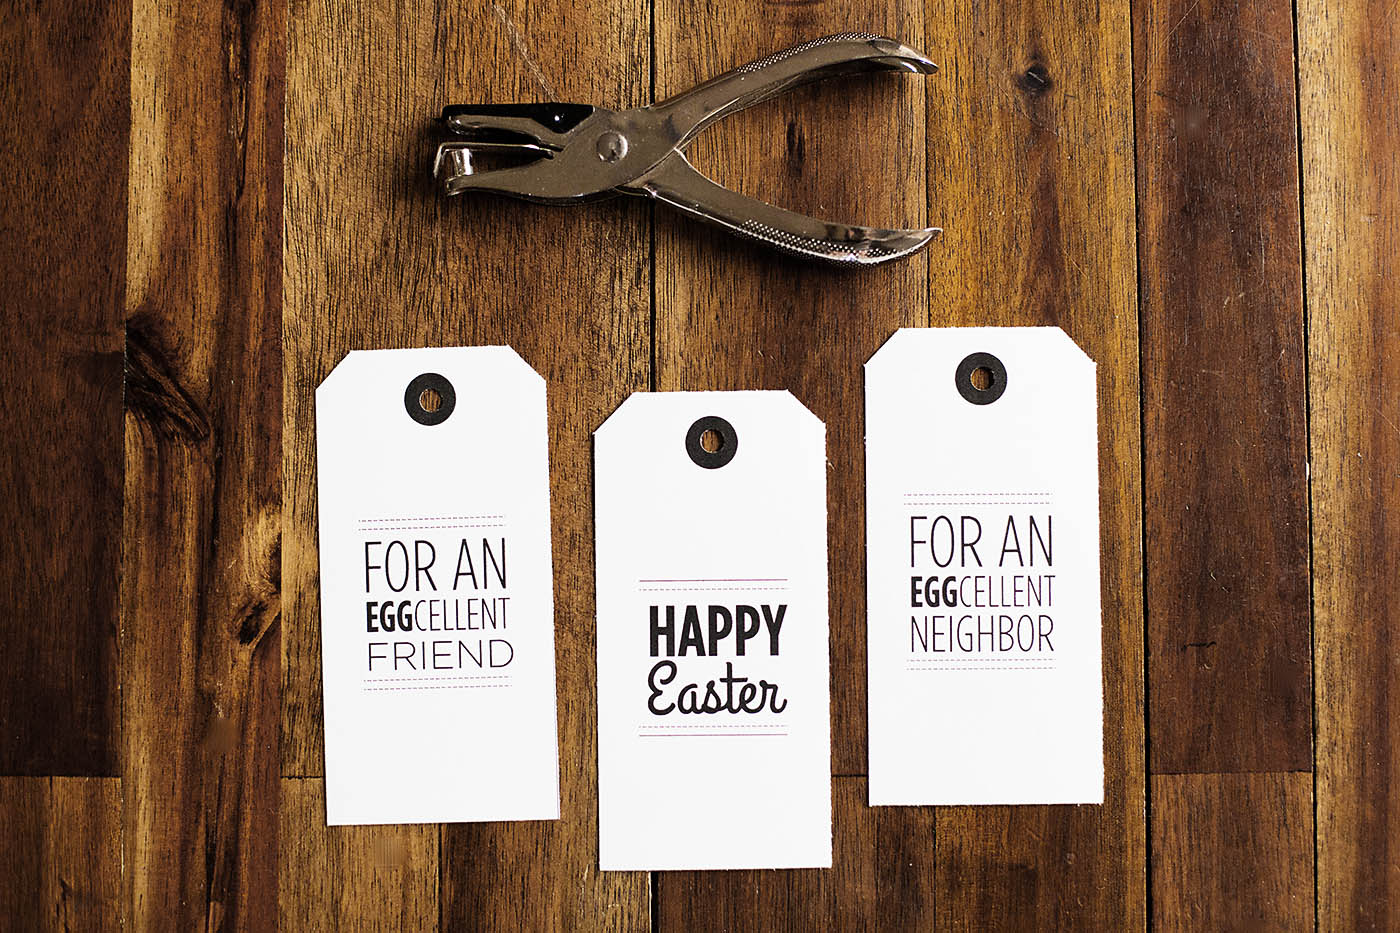 Free printable Easter tags - great for friend or neighbor gifts!